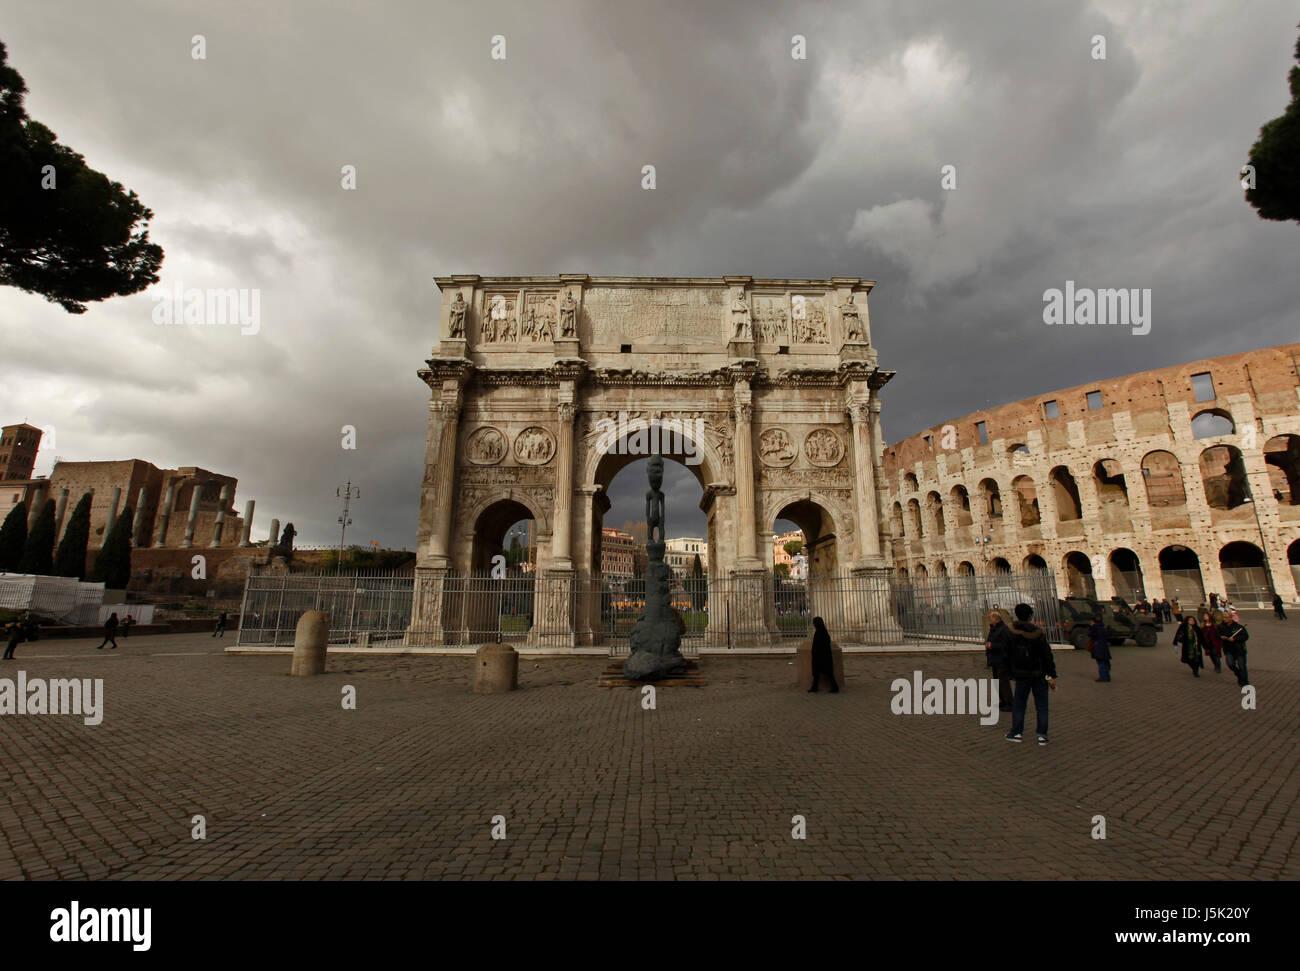 Arco di Costantino, and the colosseum, rome, italy - Stock Image